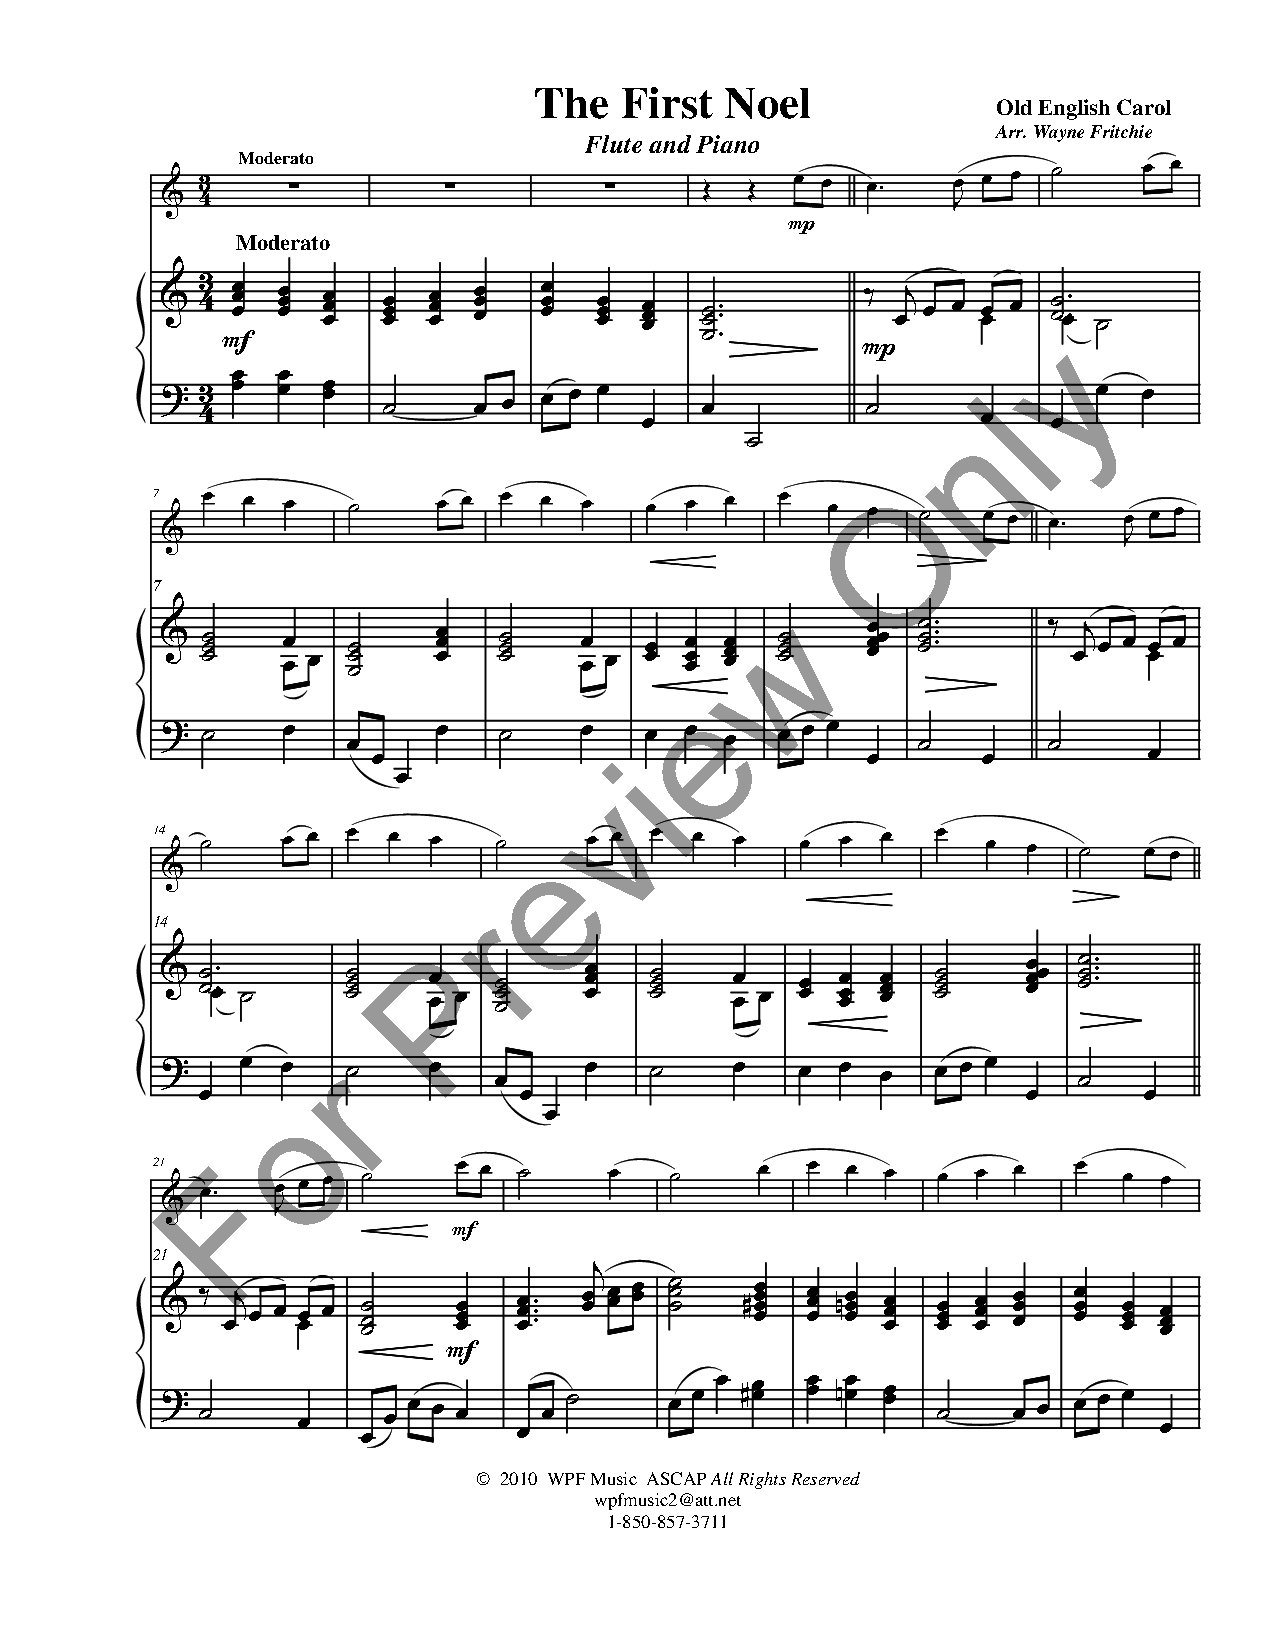 The First Noel Flute Solo With Piano Jw Pepper Sheet Music